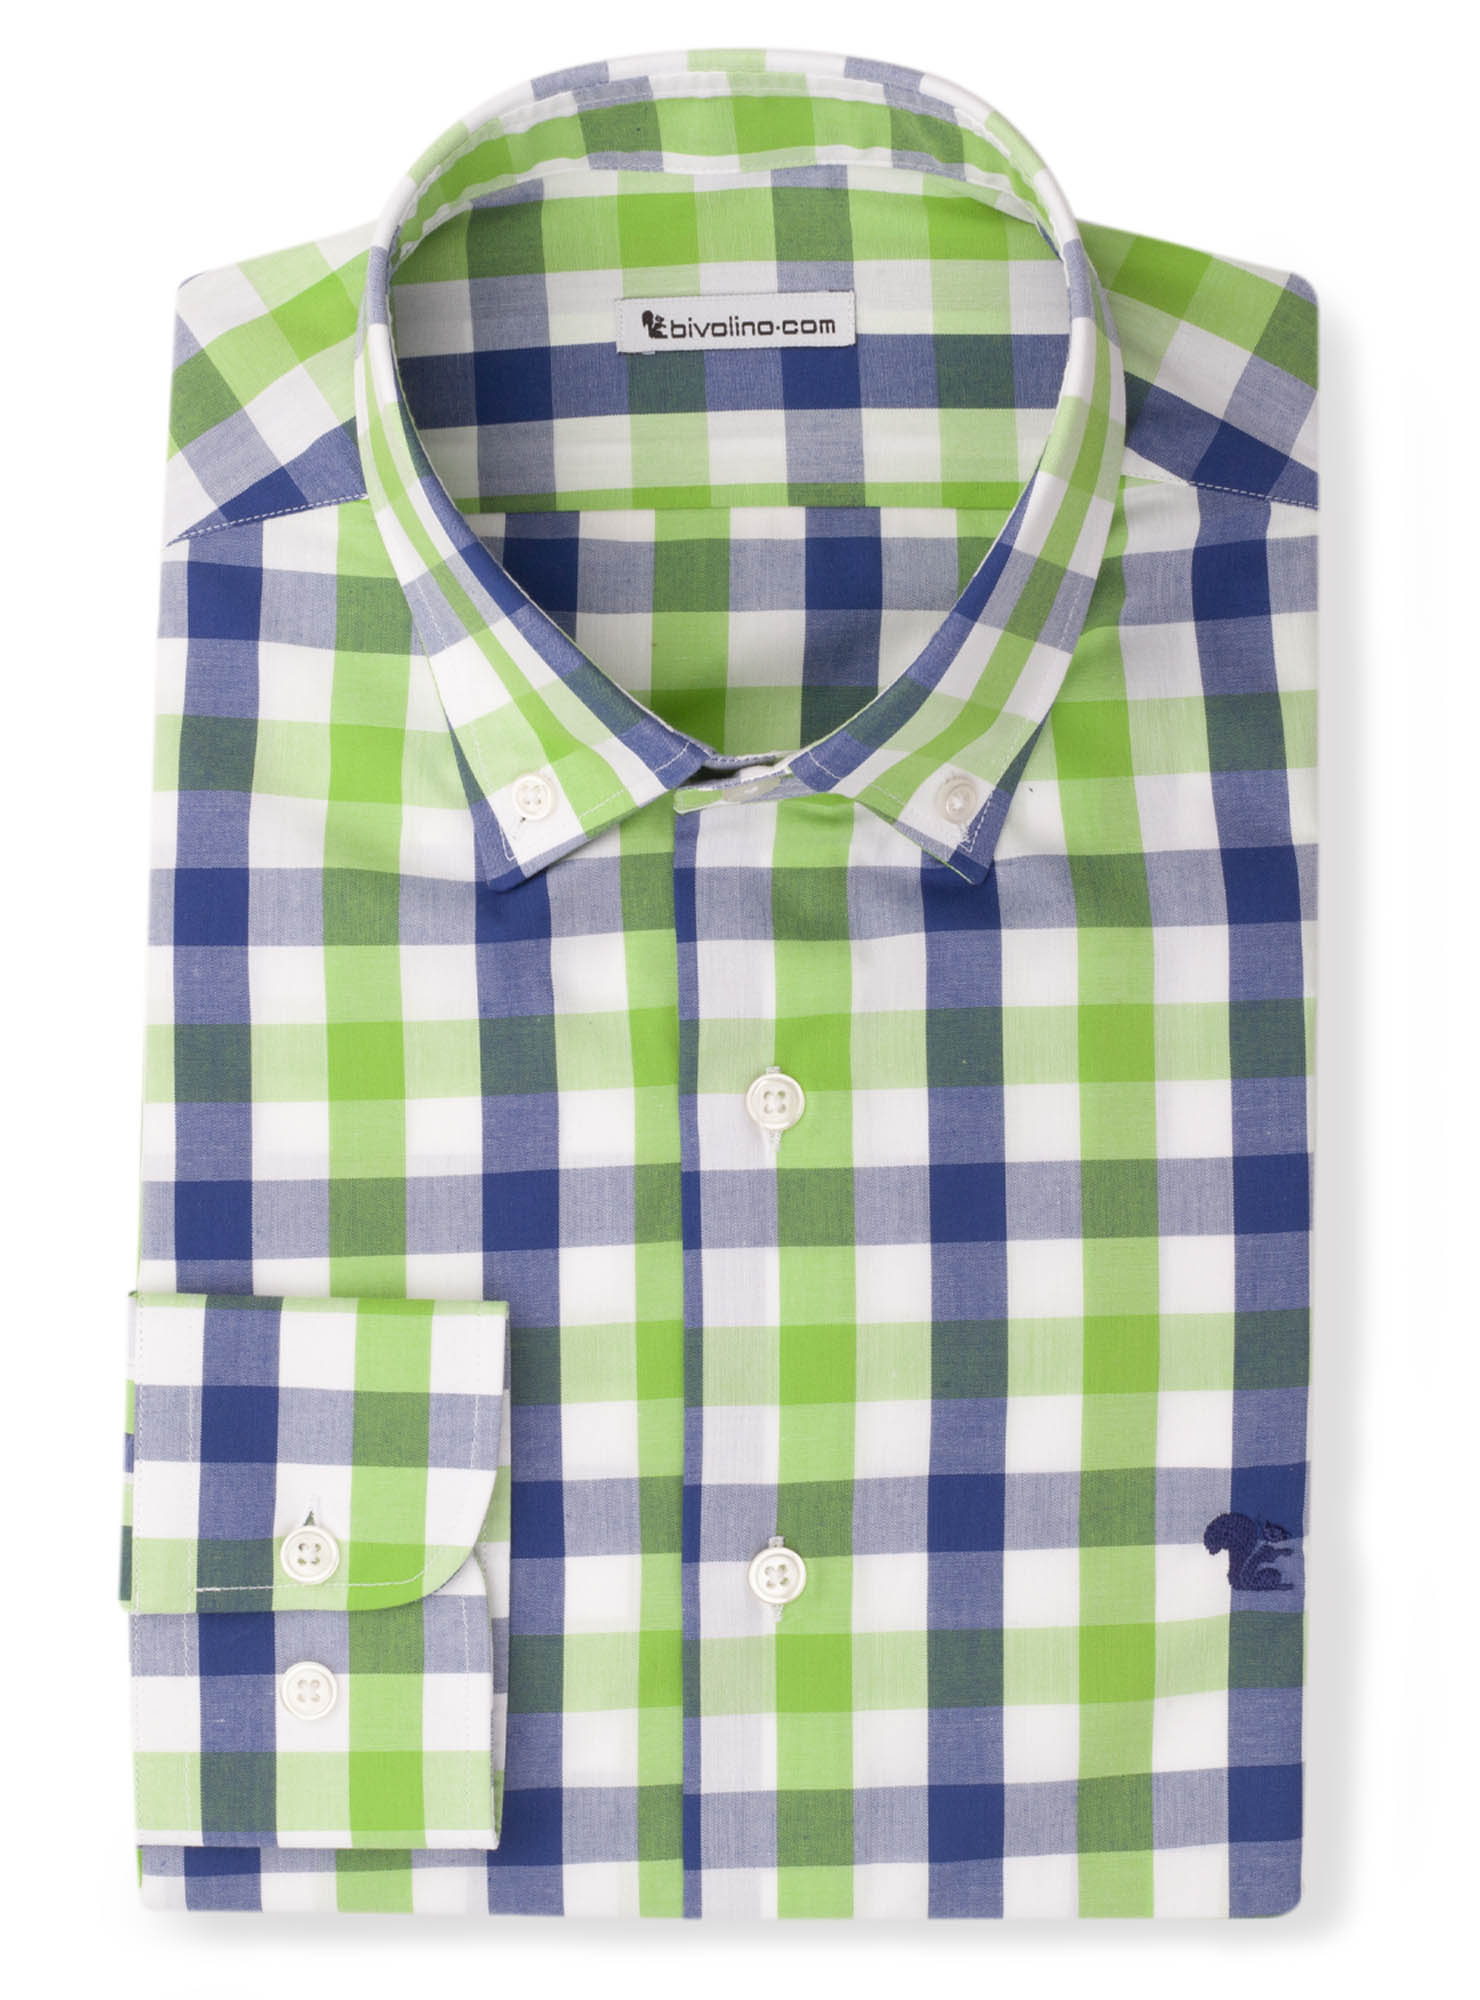 LADINI - Poplin madras check shirt green - LADO 3